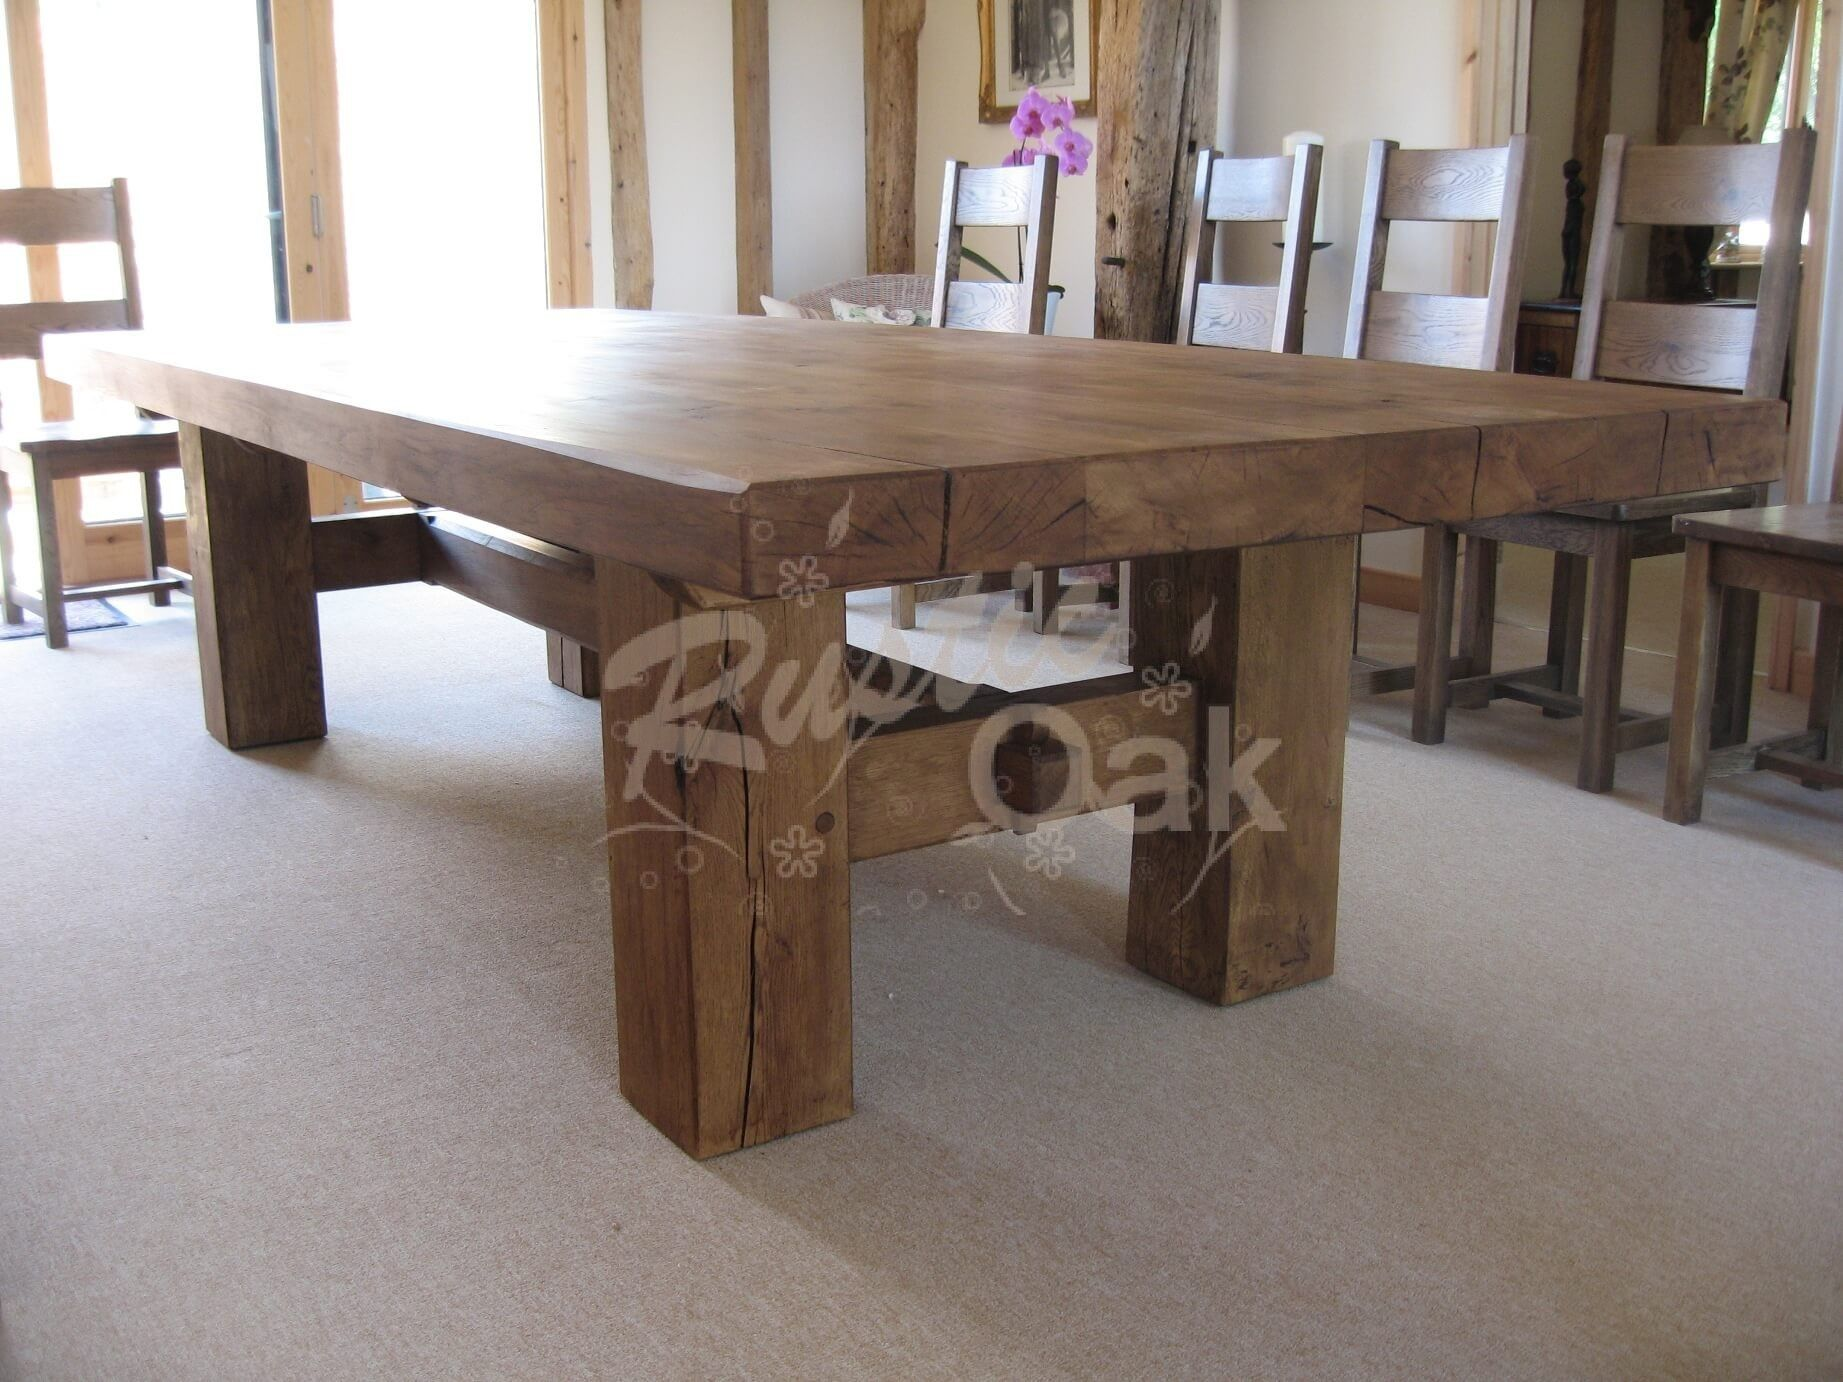 Awesome A Chunky, Rustic Looking H Base Dining Table To Spruce Up Any Dining Room.  Buy Online Or Contact Us For More Information On This Product.